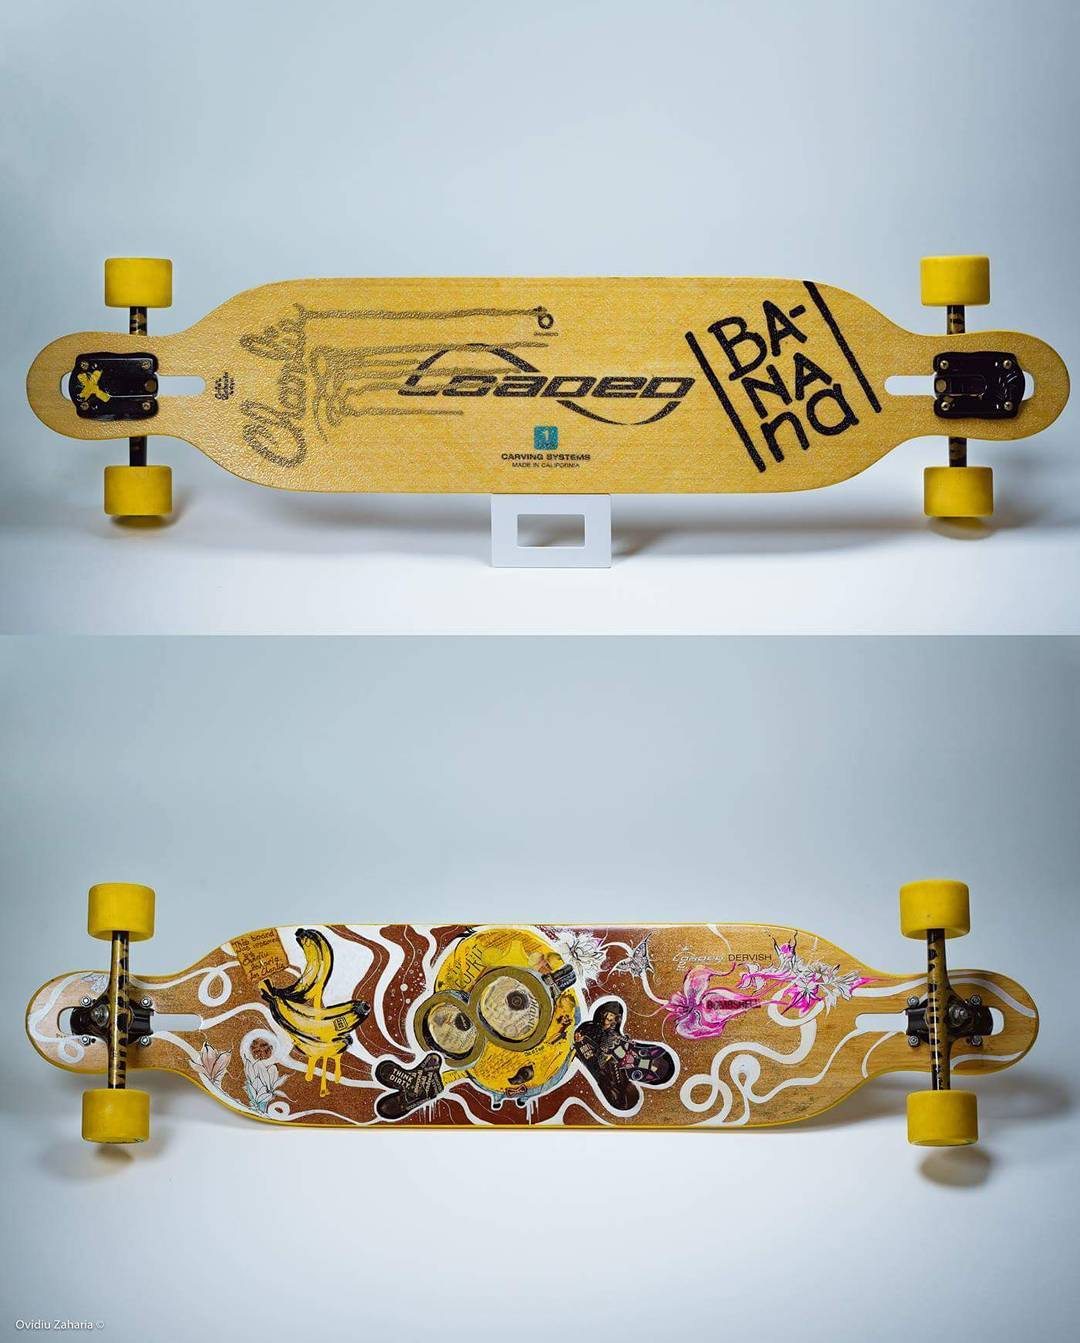 Talk about some cool custom artwork!  @ovidiuzaharia put together this amazing looking custom paint job on his Loaded Dervish and we can't help but crave bananas and speak gibberish!  #FanFriday #LoadedBoards #Dervish